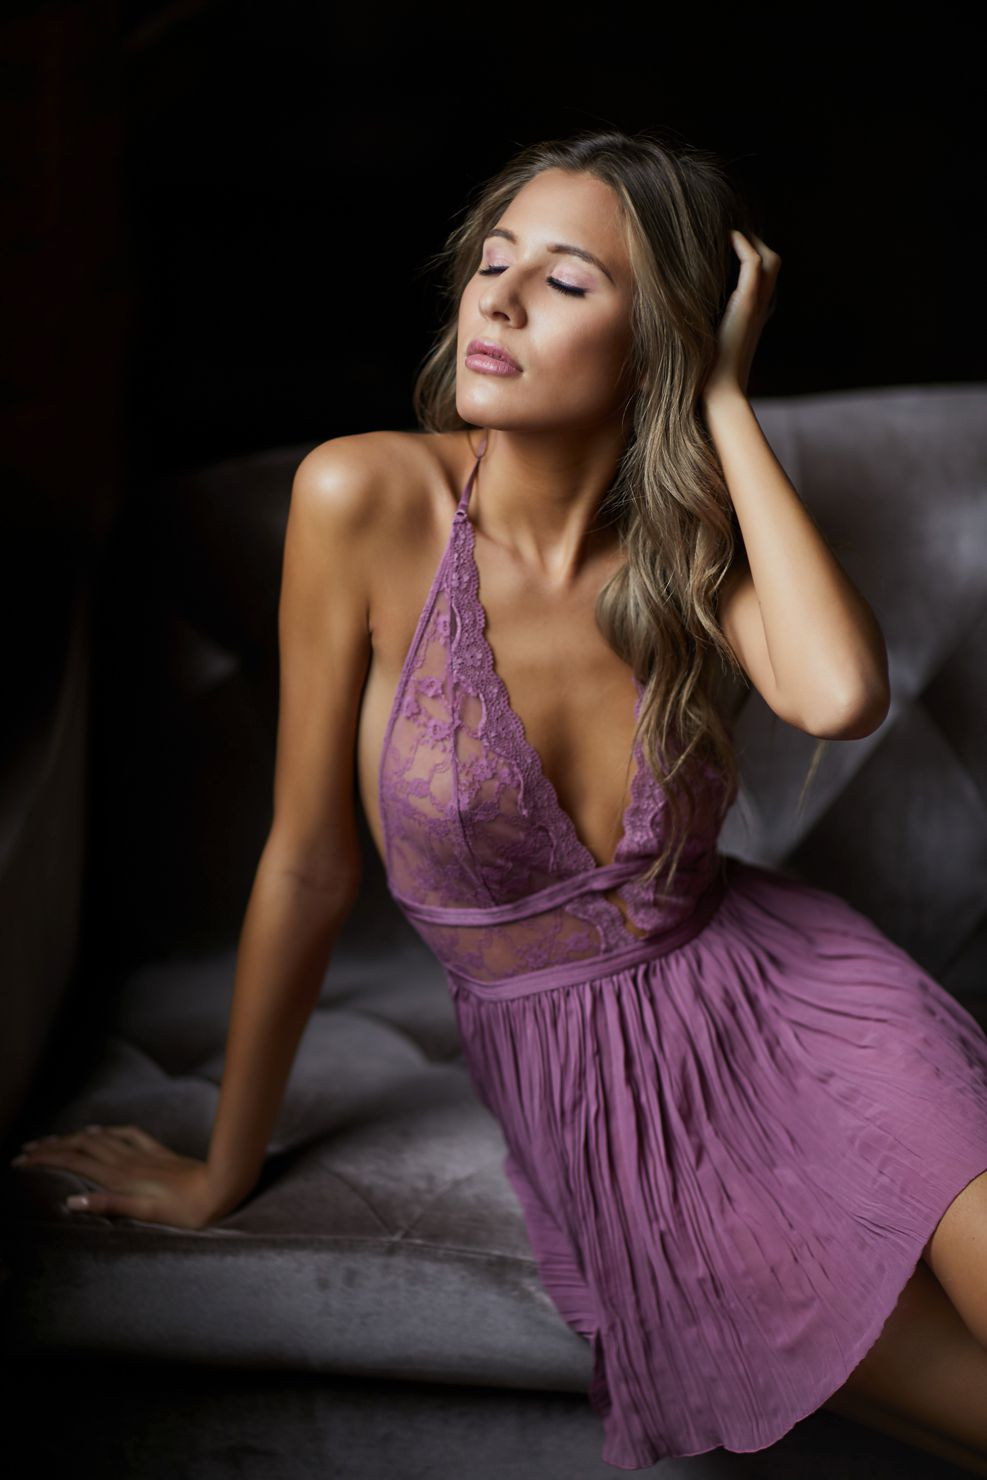 edgy risque sexy lingerie boudoir chicago - Top 3 Reasons Why You Should Have a Boudoir Session.